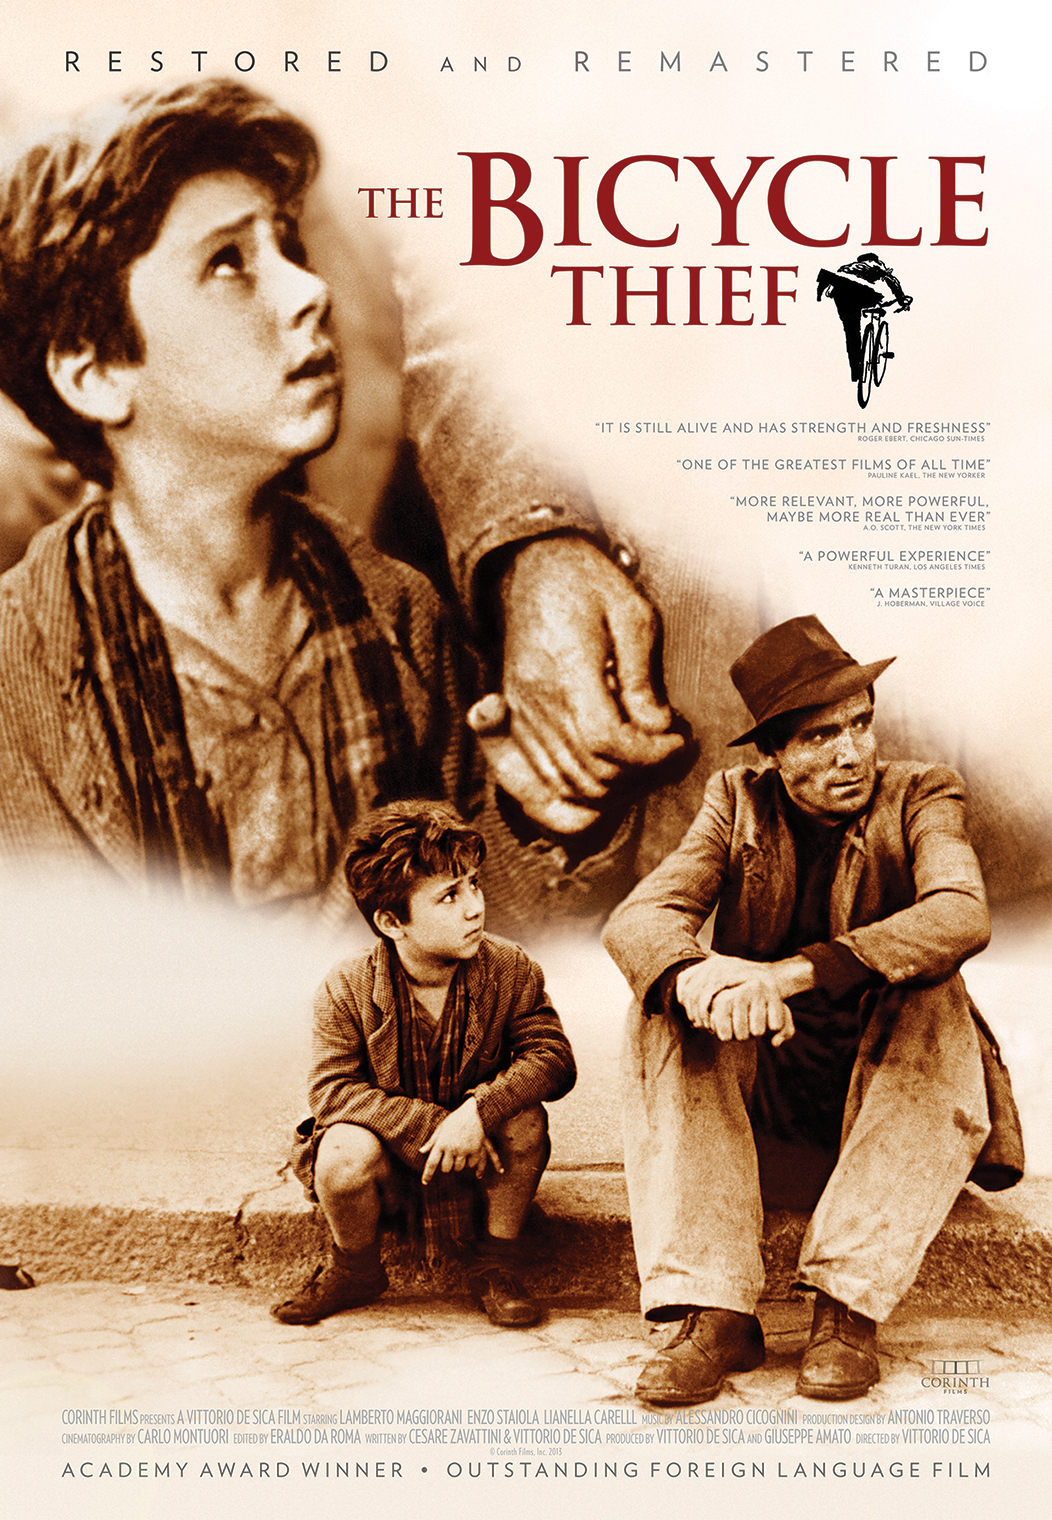 The Bicycle Thief Poster Art